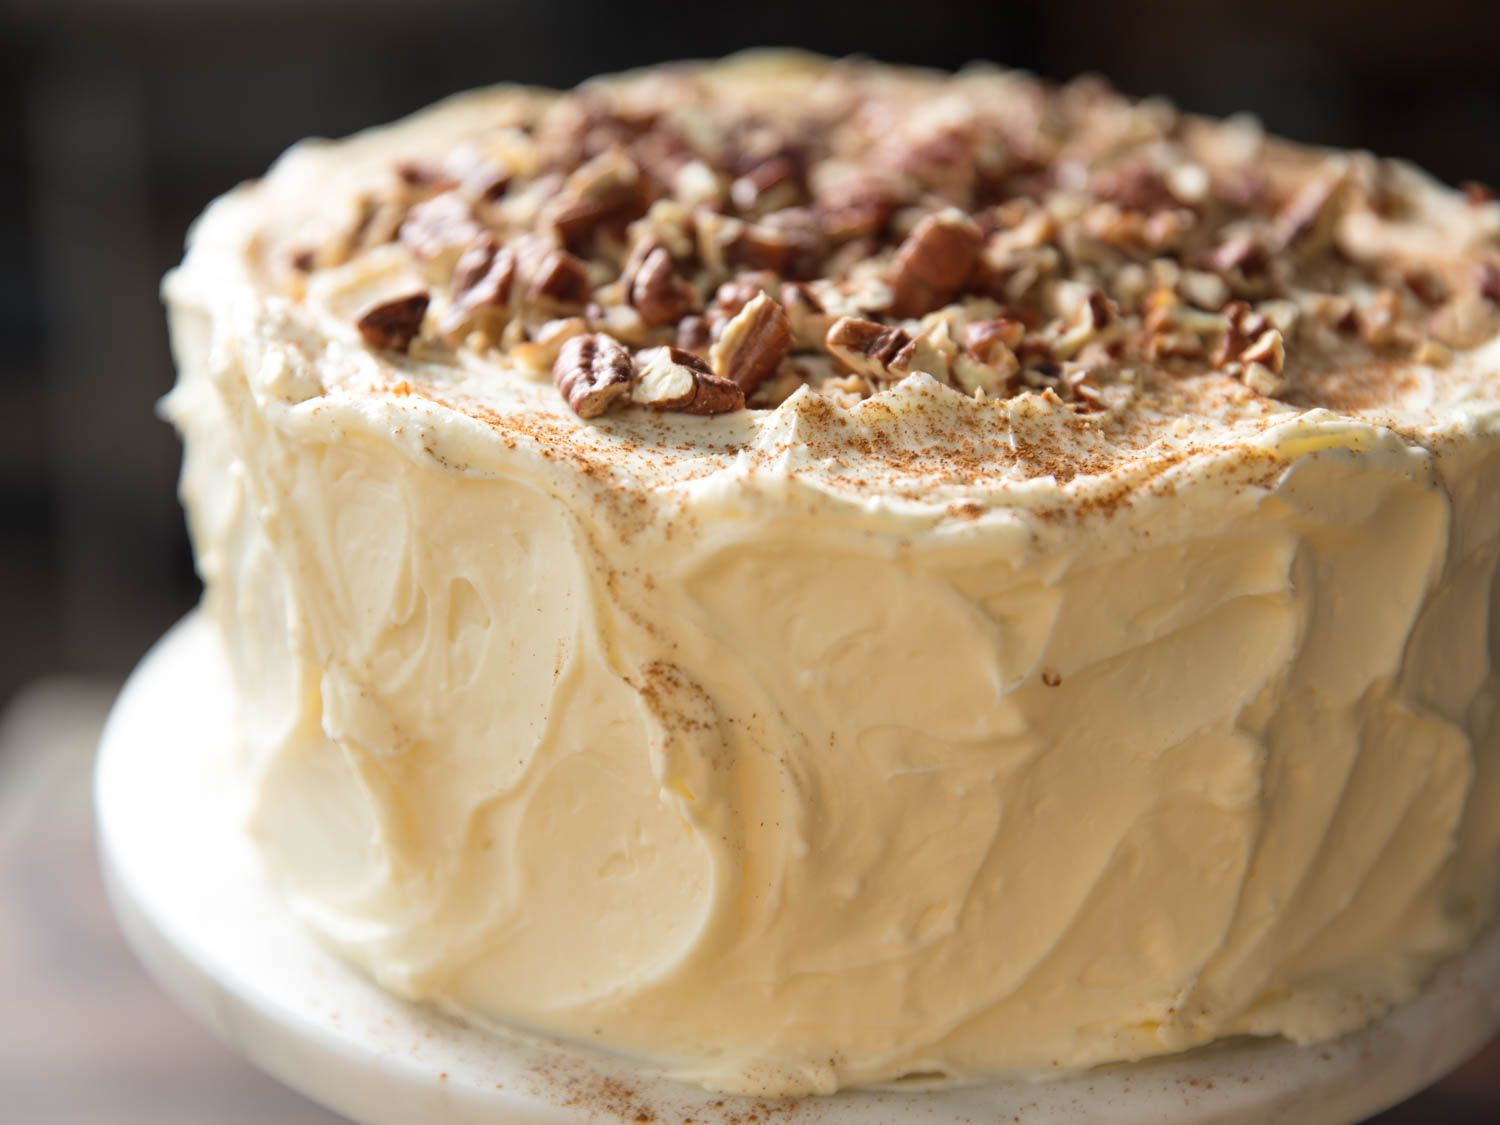 Close-up of finished pumpkin layer cake, frosted with cream cheese buttercream and topped with pecans and cinnamon